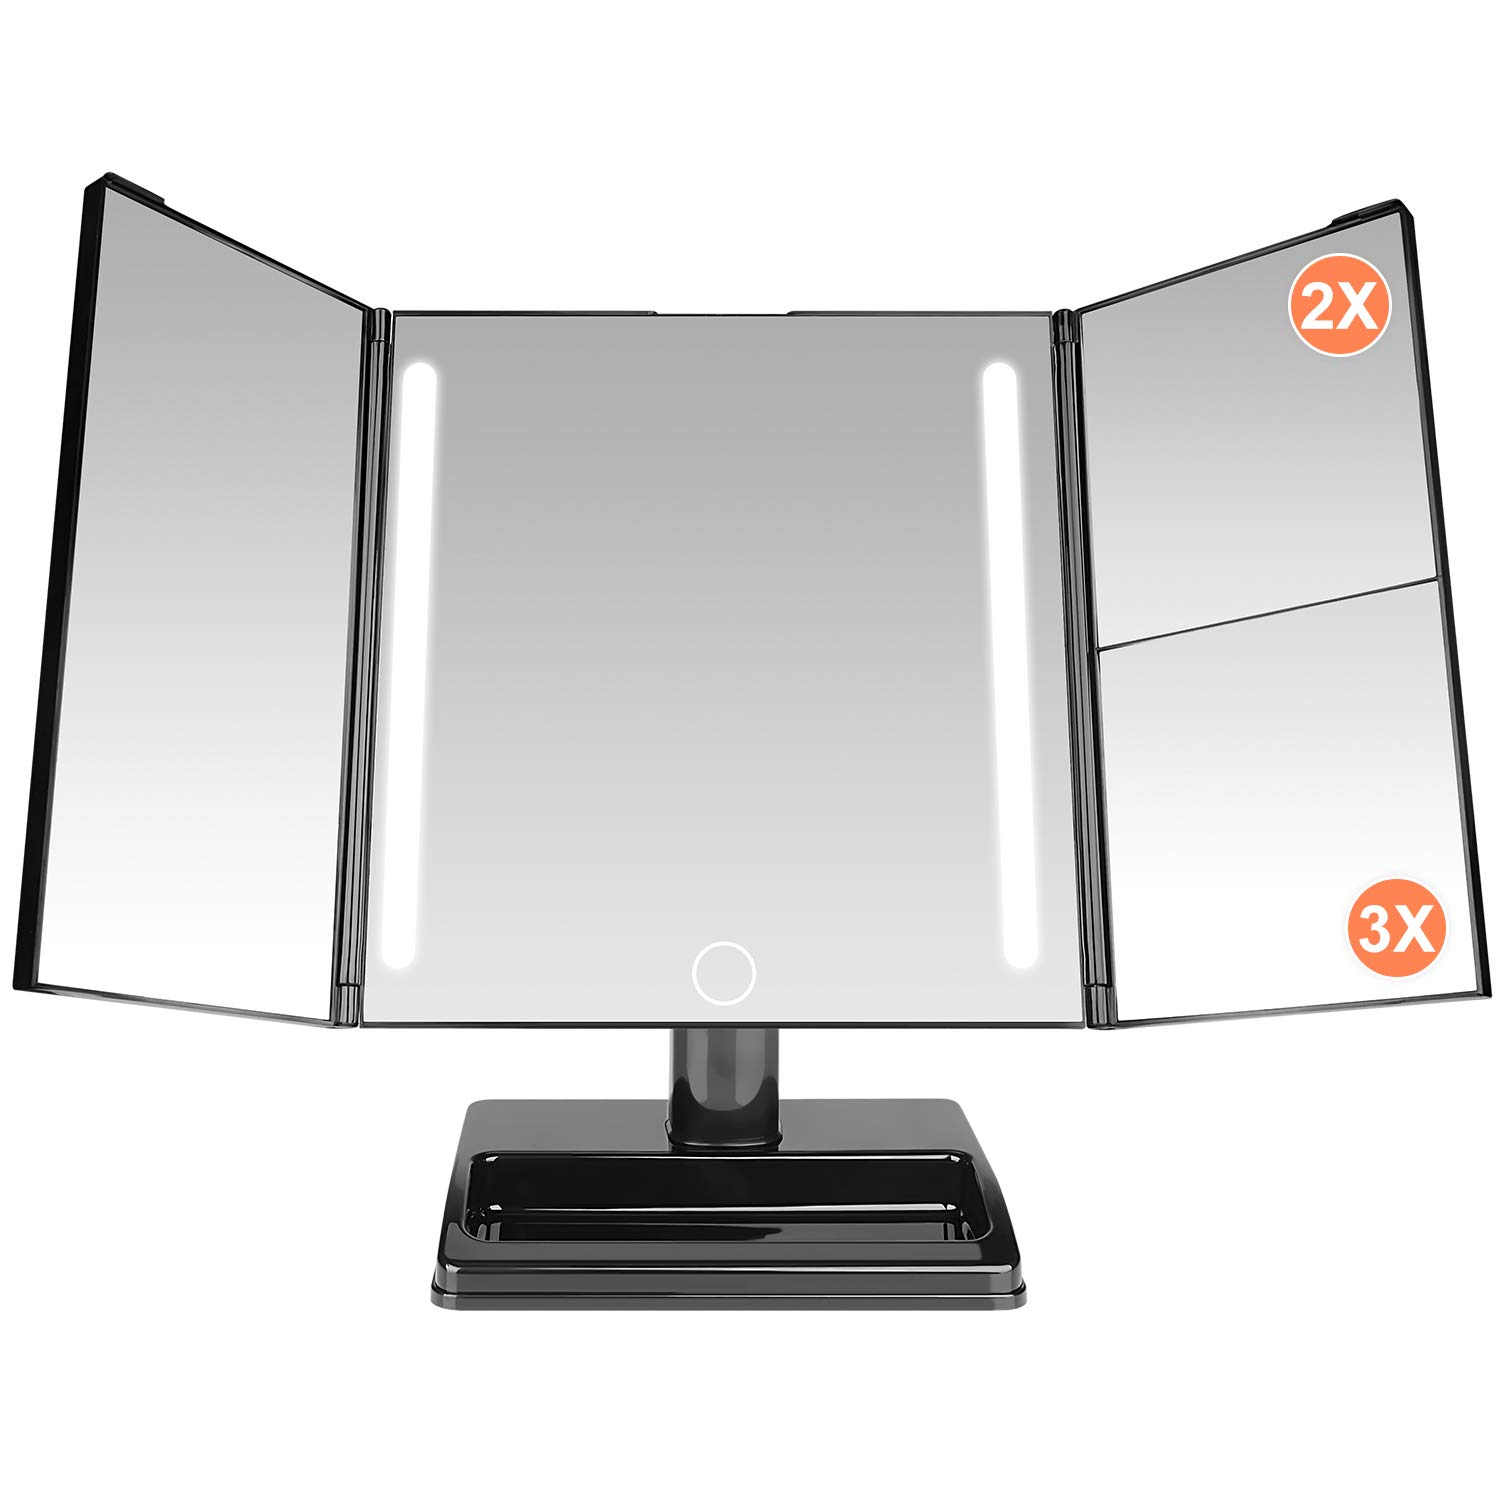 Makeup Mirror, ESEOE 32 Pcs Led Lighted Vanity Mirror with 3x/2x Magnification,360 Degree Adjustable Rotation,Adjustable Brightness Touch Screen,Detachable Tri-fold Cosmetic Mirror with USB Cable